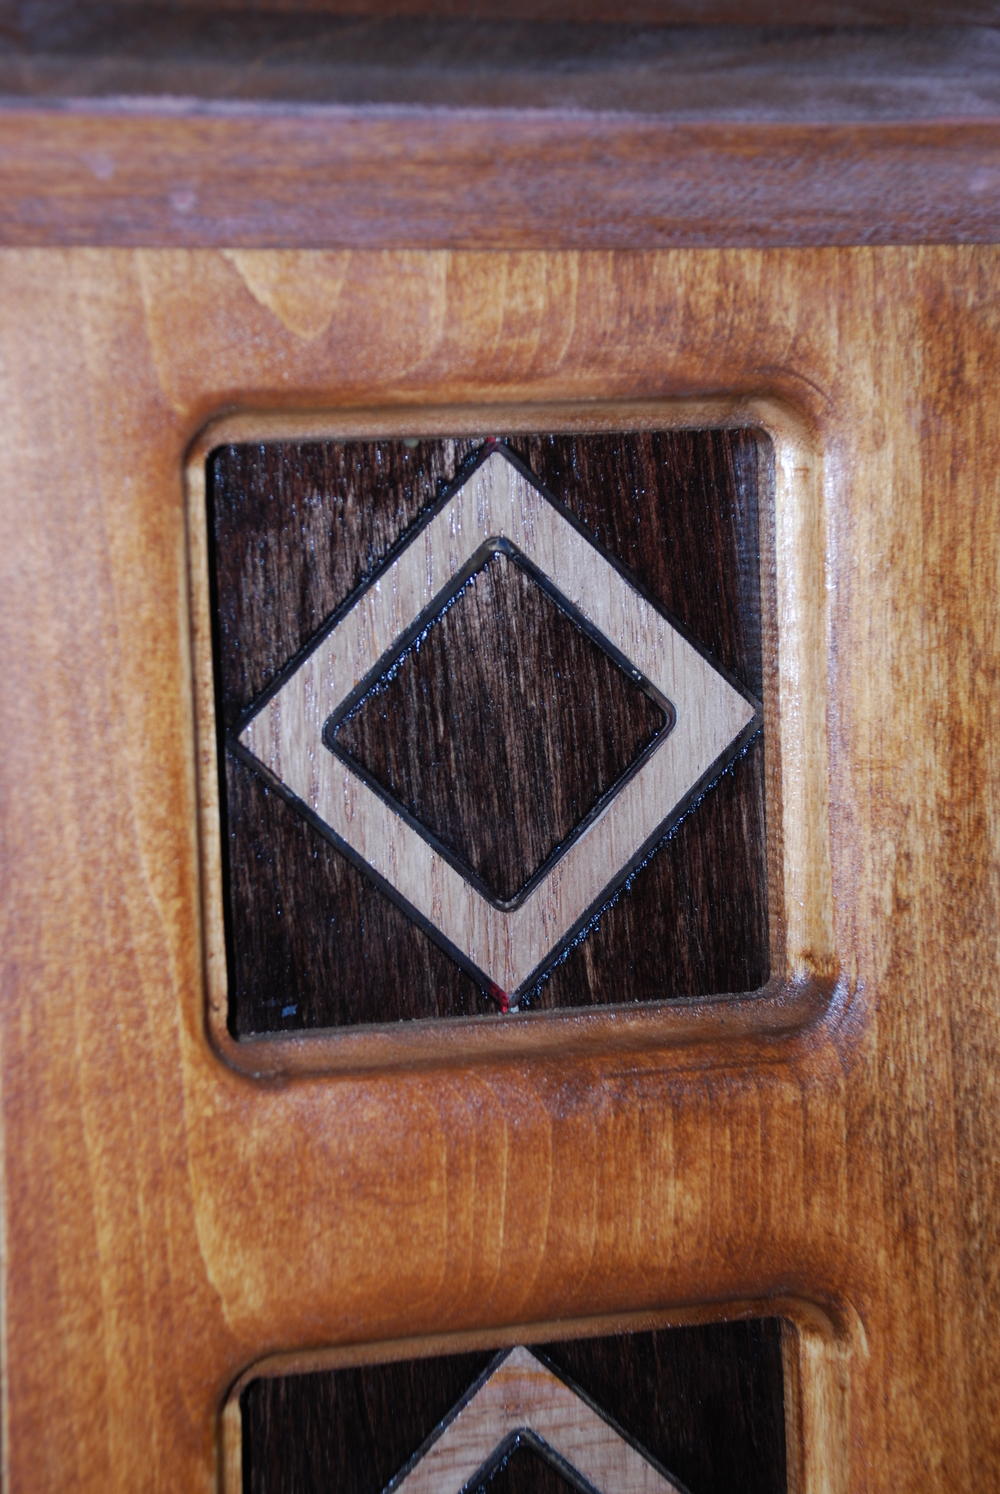 This example has a piece of clear acrylic inlay-ed into a birch board (the dark brown wood). A piece of Red Oak was then further inlay-ed into the acrylic (the light colored diamond). The result is a thin acrylic border around the oak which can be lit up by the LED strips which have been placed behind the acrylic. Check out our Image Gallery for further pictures of this project.